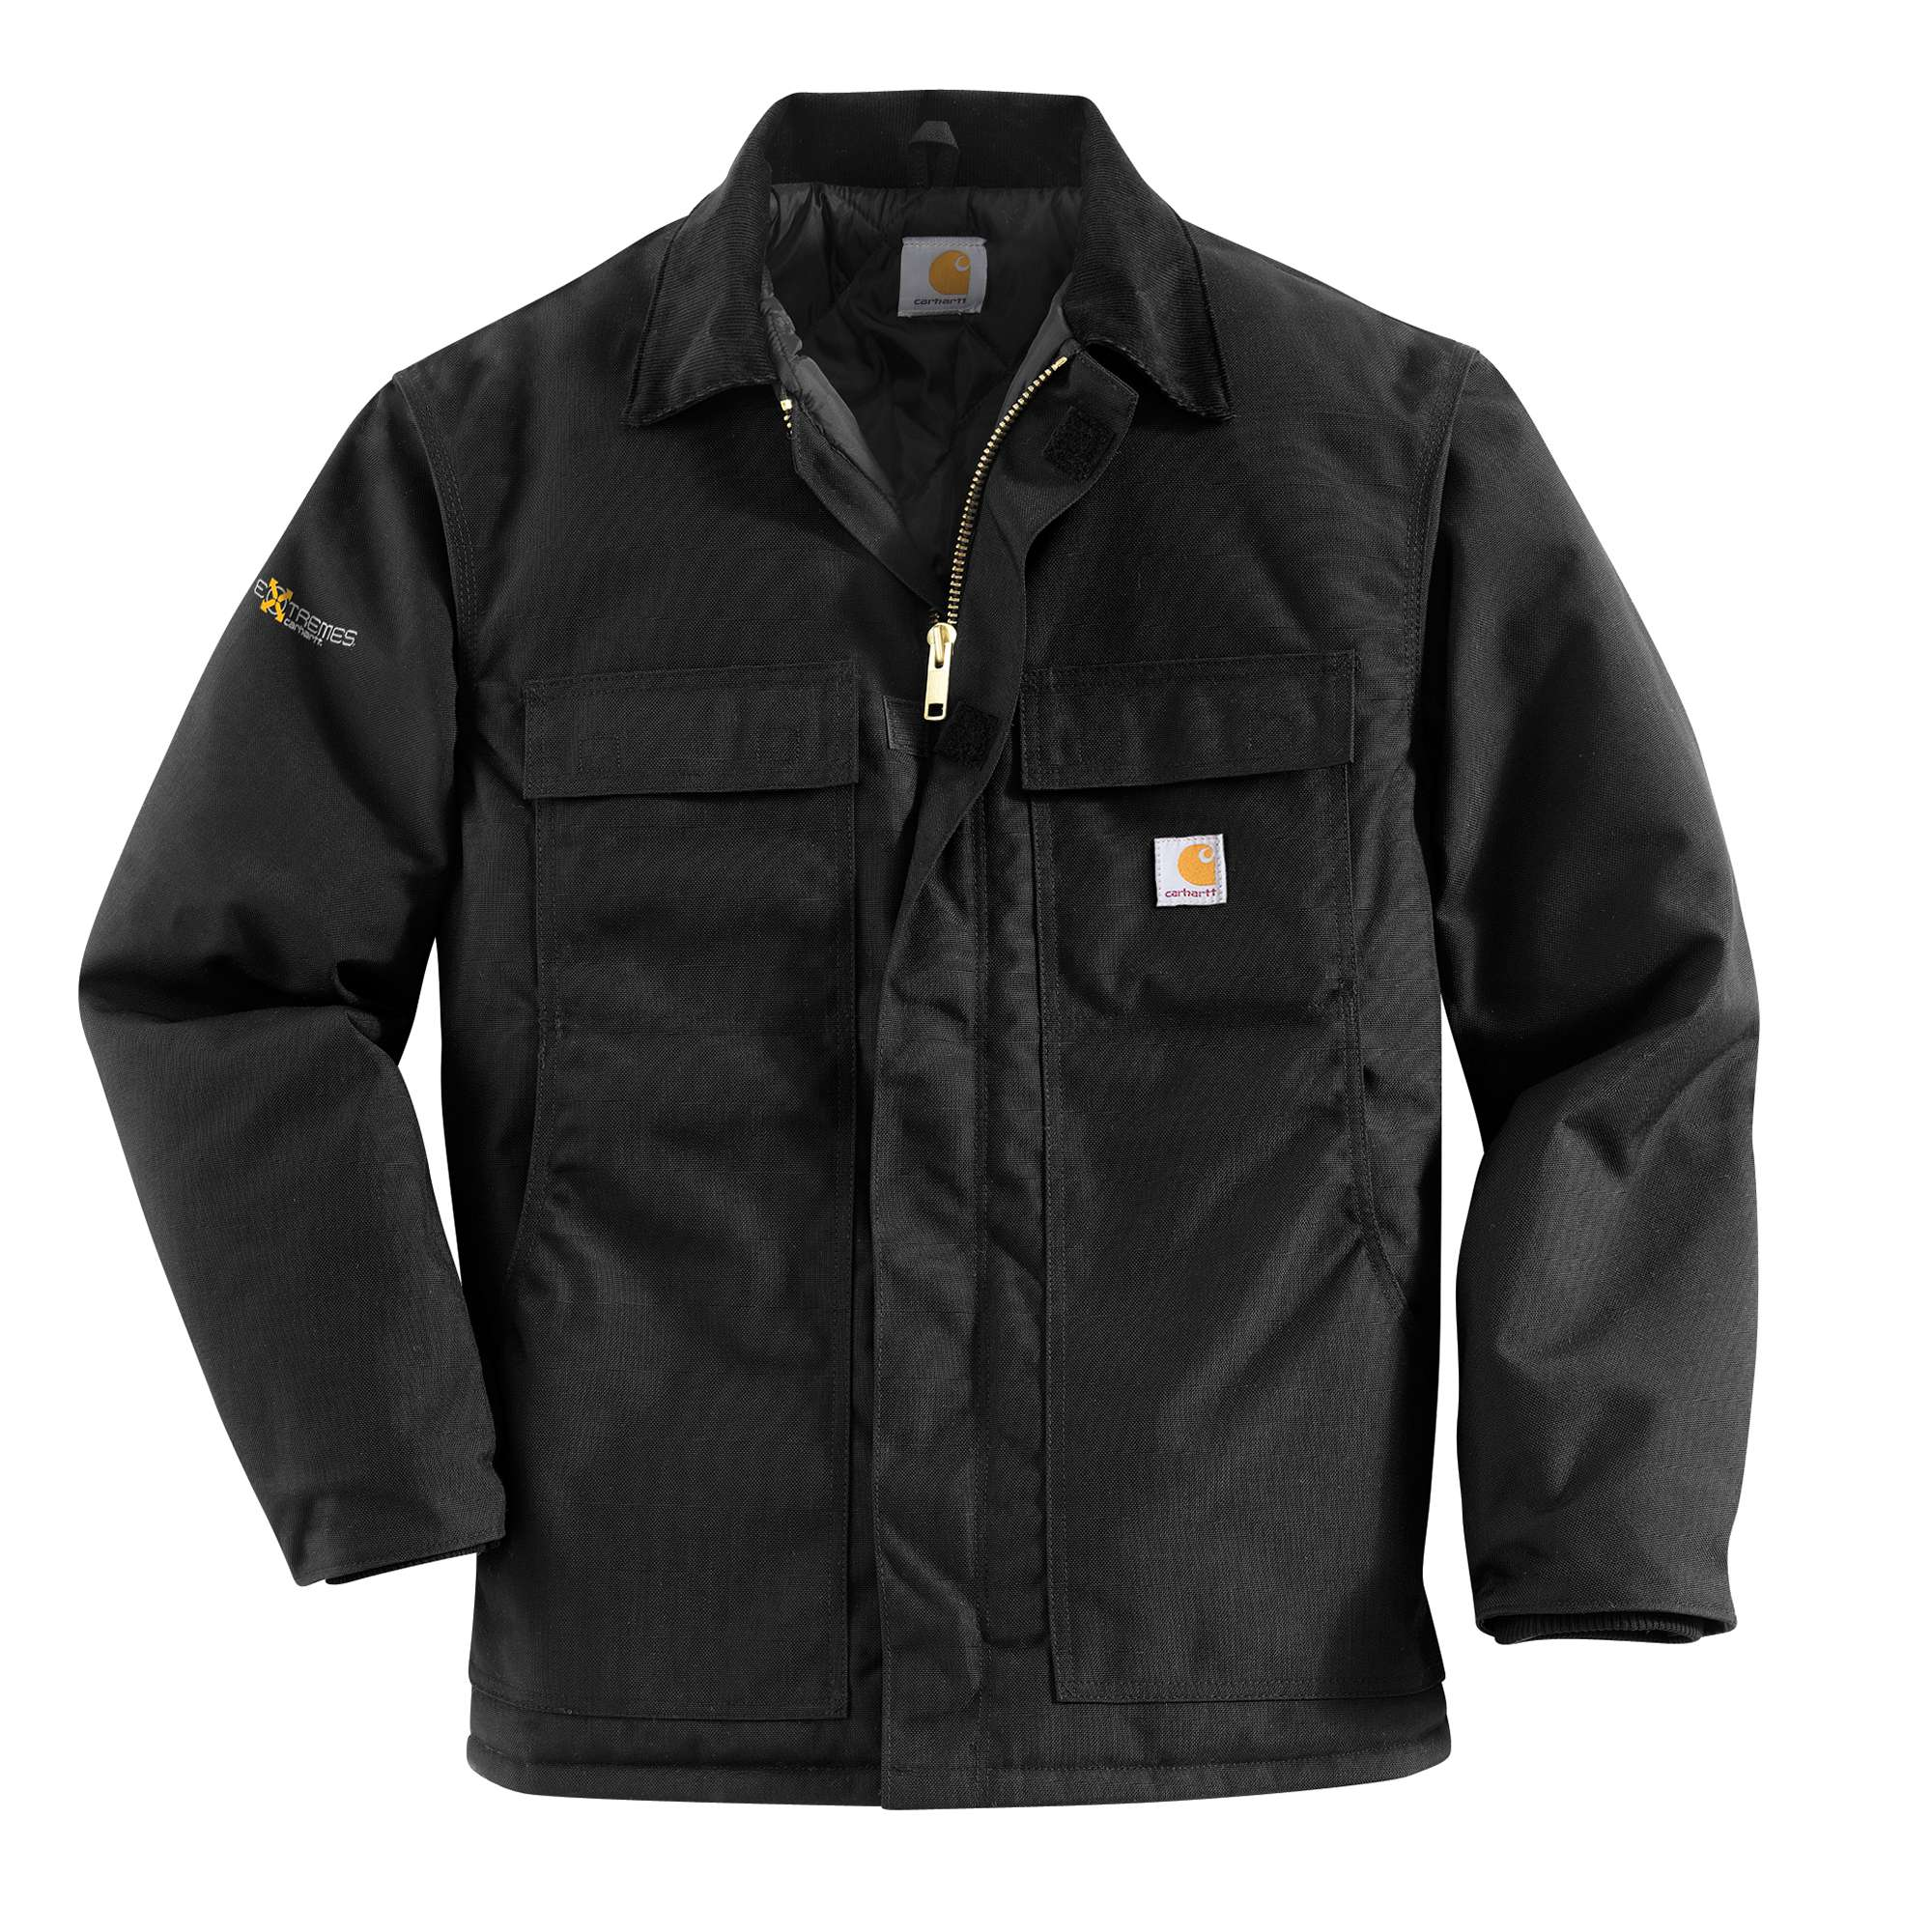 MEN'S YUKON EXTREMES® ARCTIC QUILT-LINED COAT